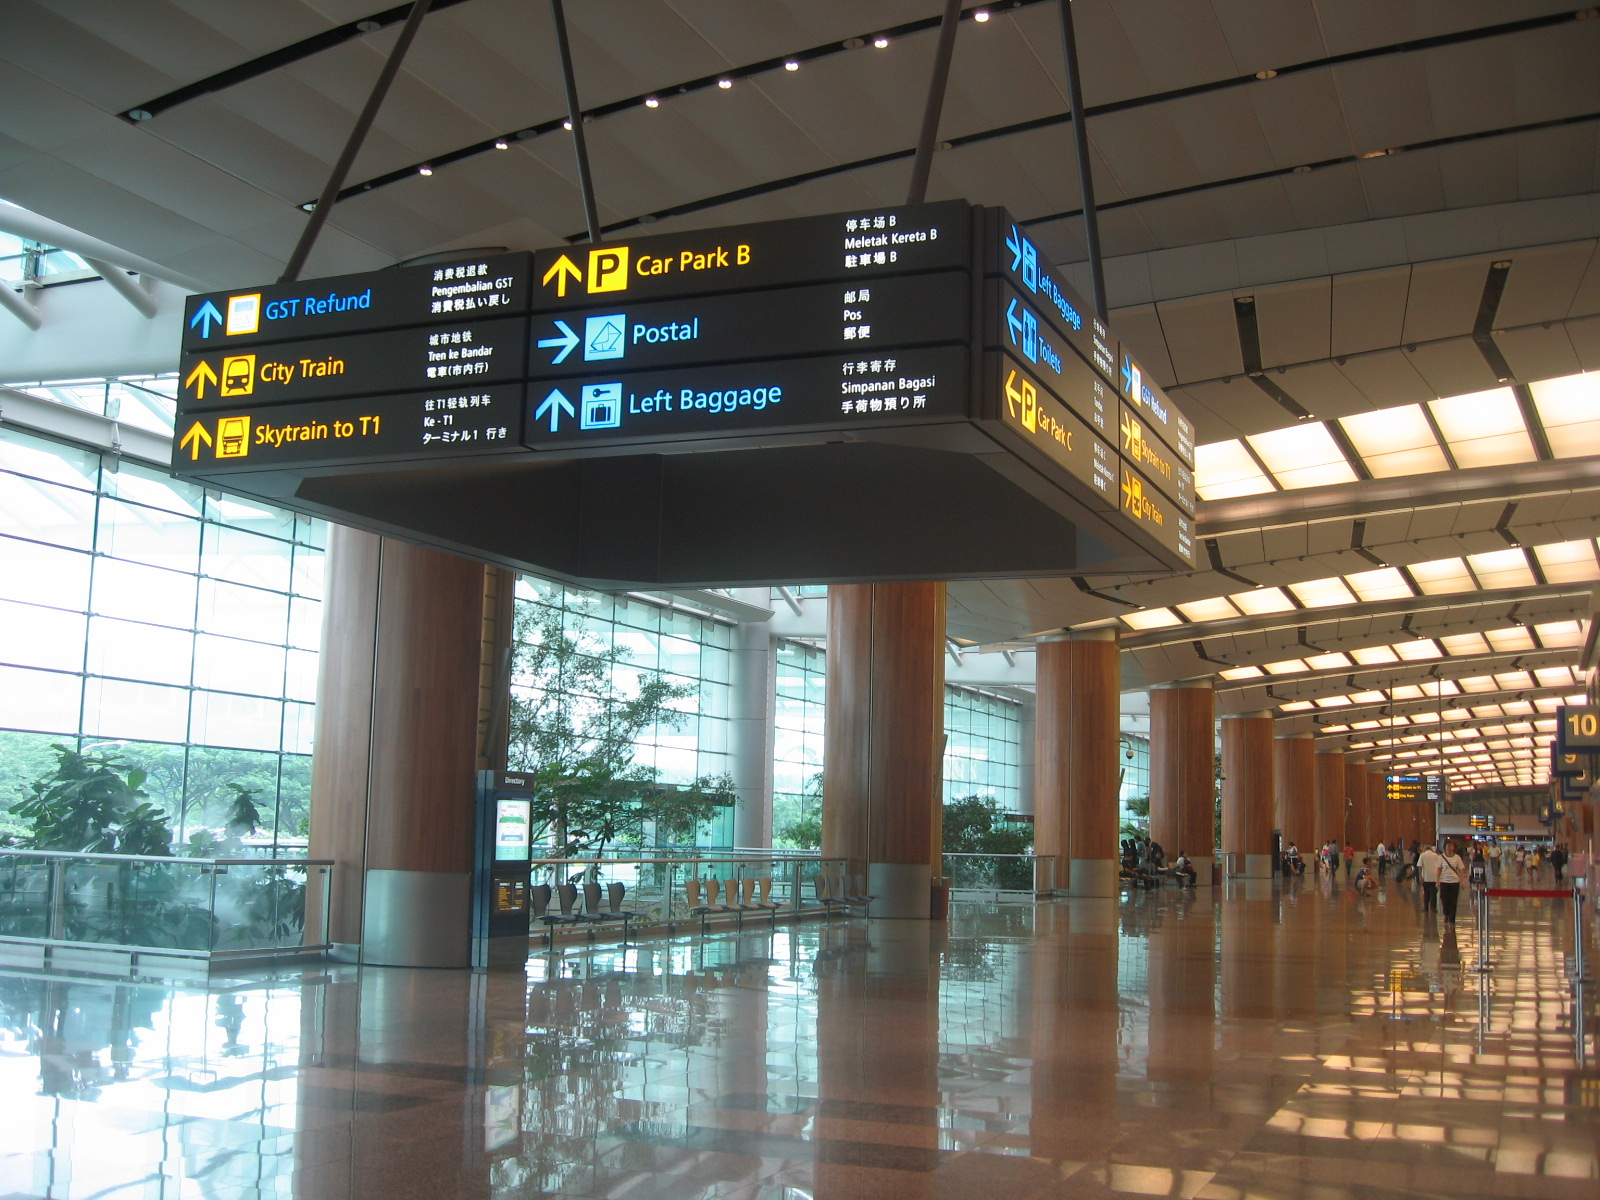 https://upload.wikimedia.org/wikipedia/commons/5/50/Changi_Airport,_Terminal_2,_Departure_Hall_11.JPG